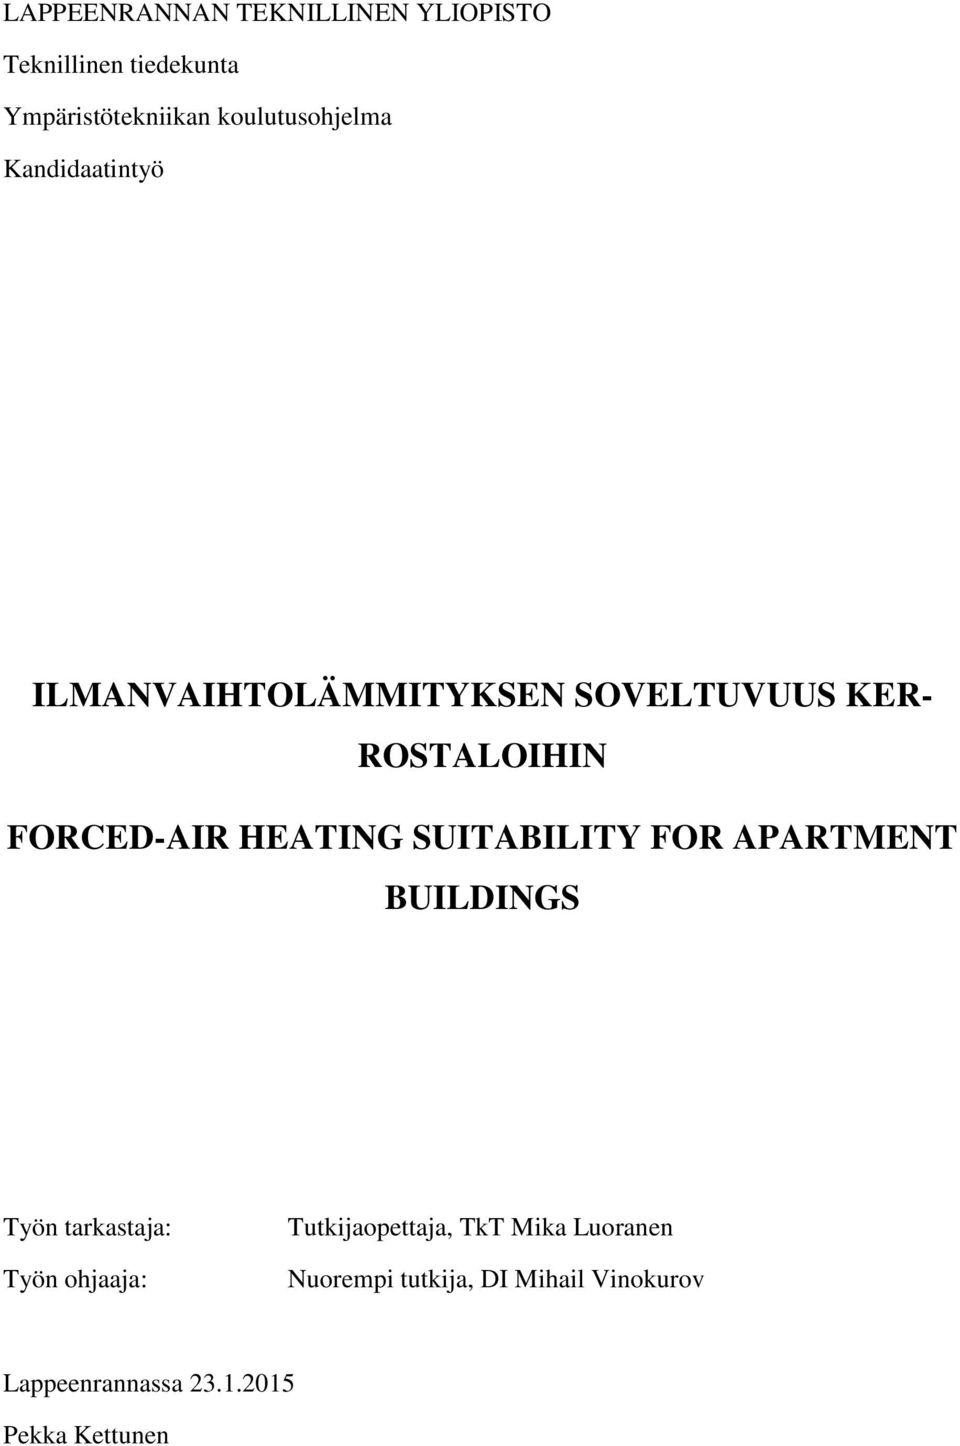 FORCED-AIR HEATING SUITABILITY FOR APARTMENT BUILDINGS Työn tarkastaja: Työn ohjaaja: